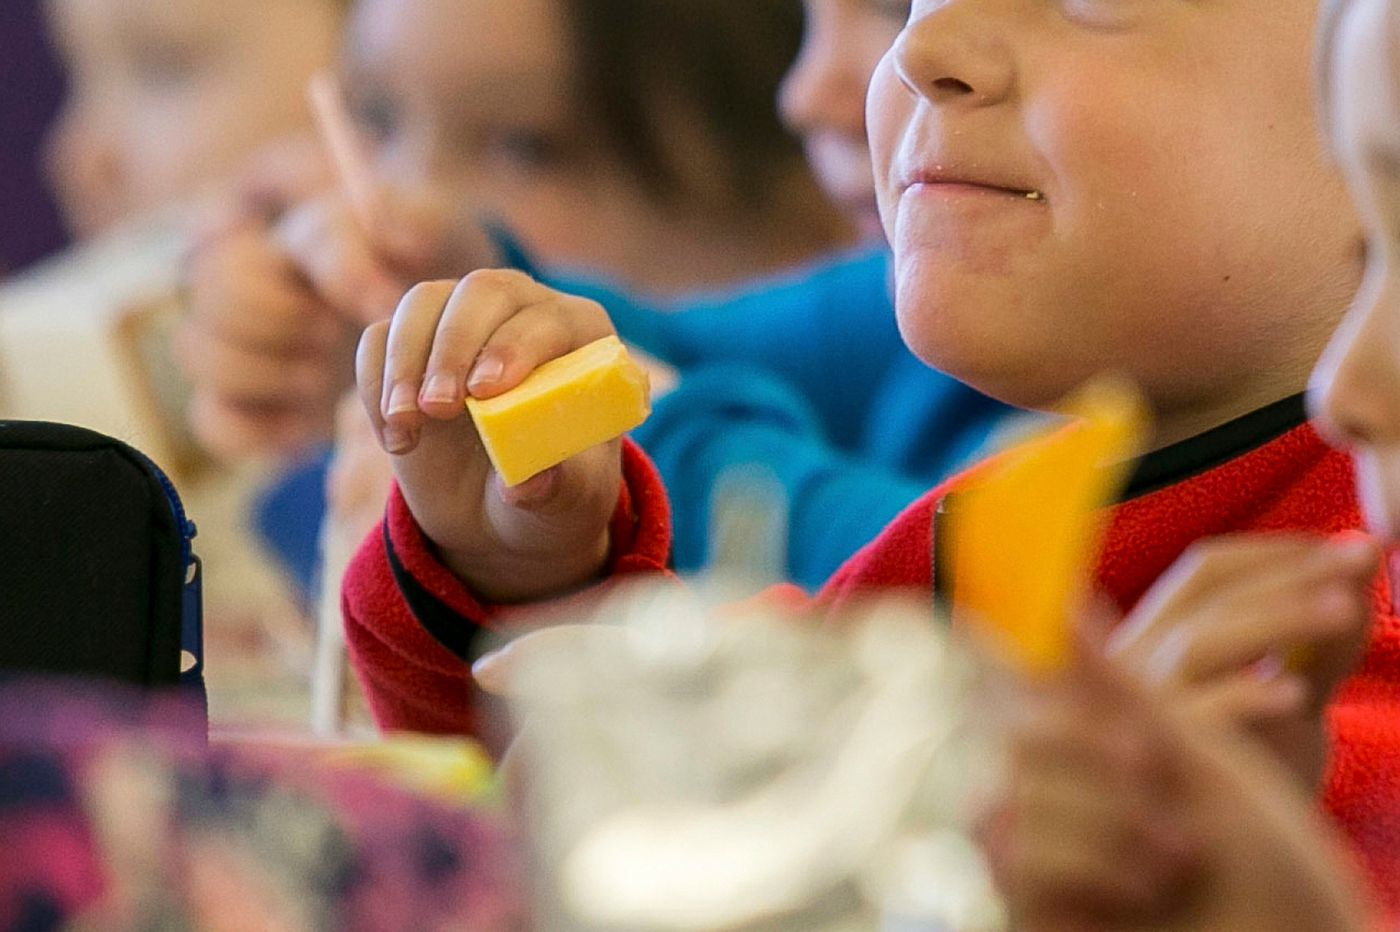 New Jersey lawmakers considering bills to end 'lunch shaming' and change unpaid fee policy for schools